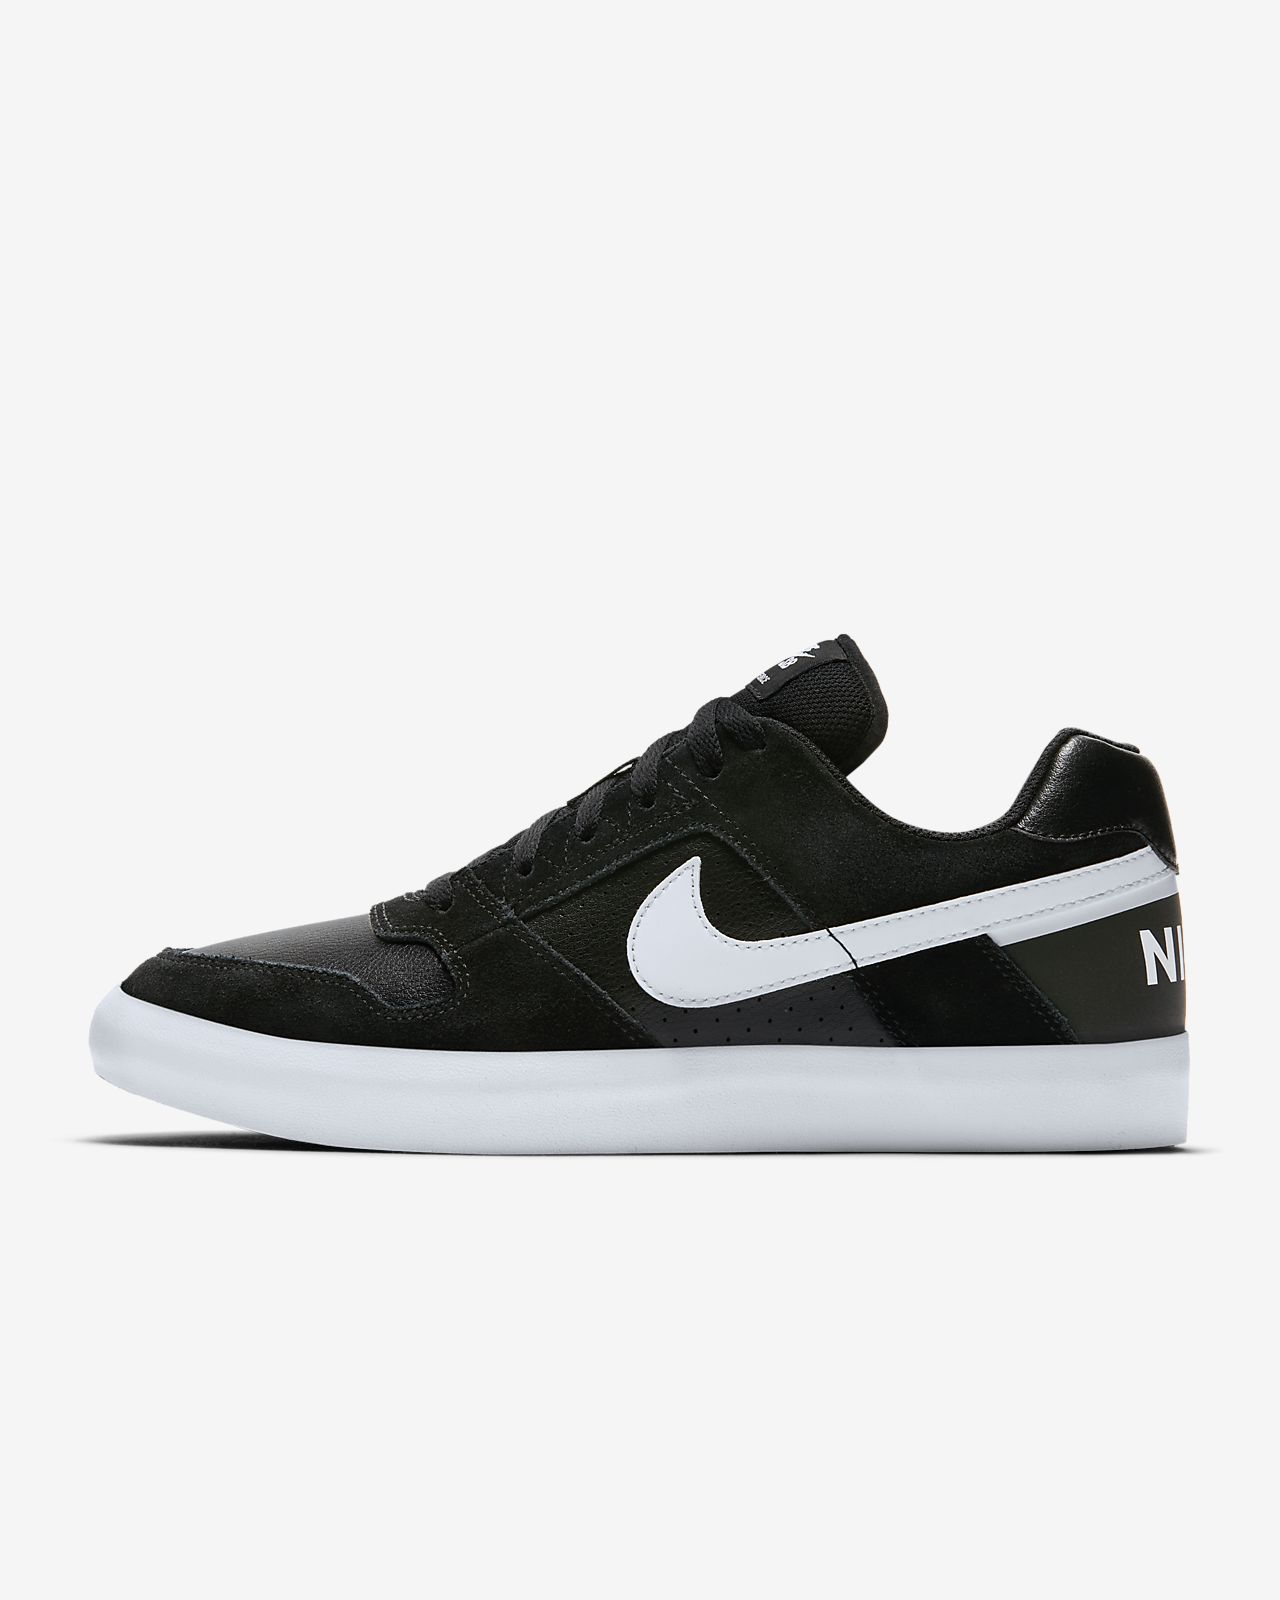 Nike SB Delta Force Vulc Men's Skateboarding Shoe